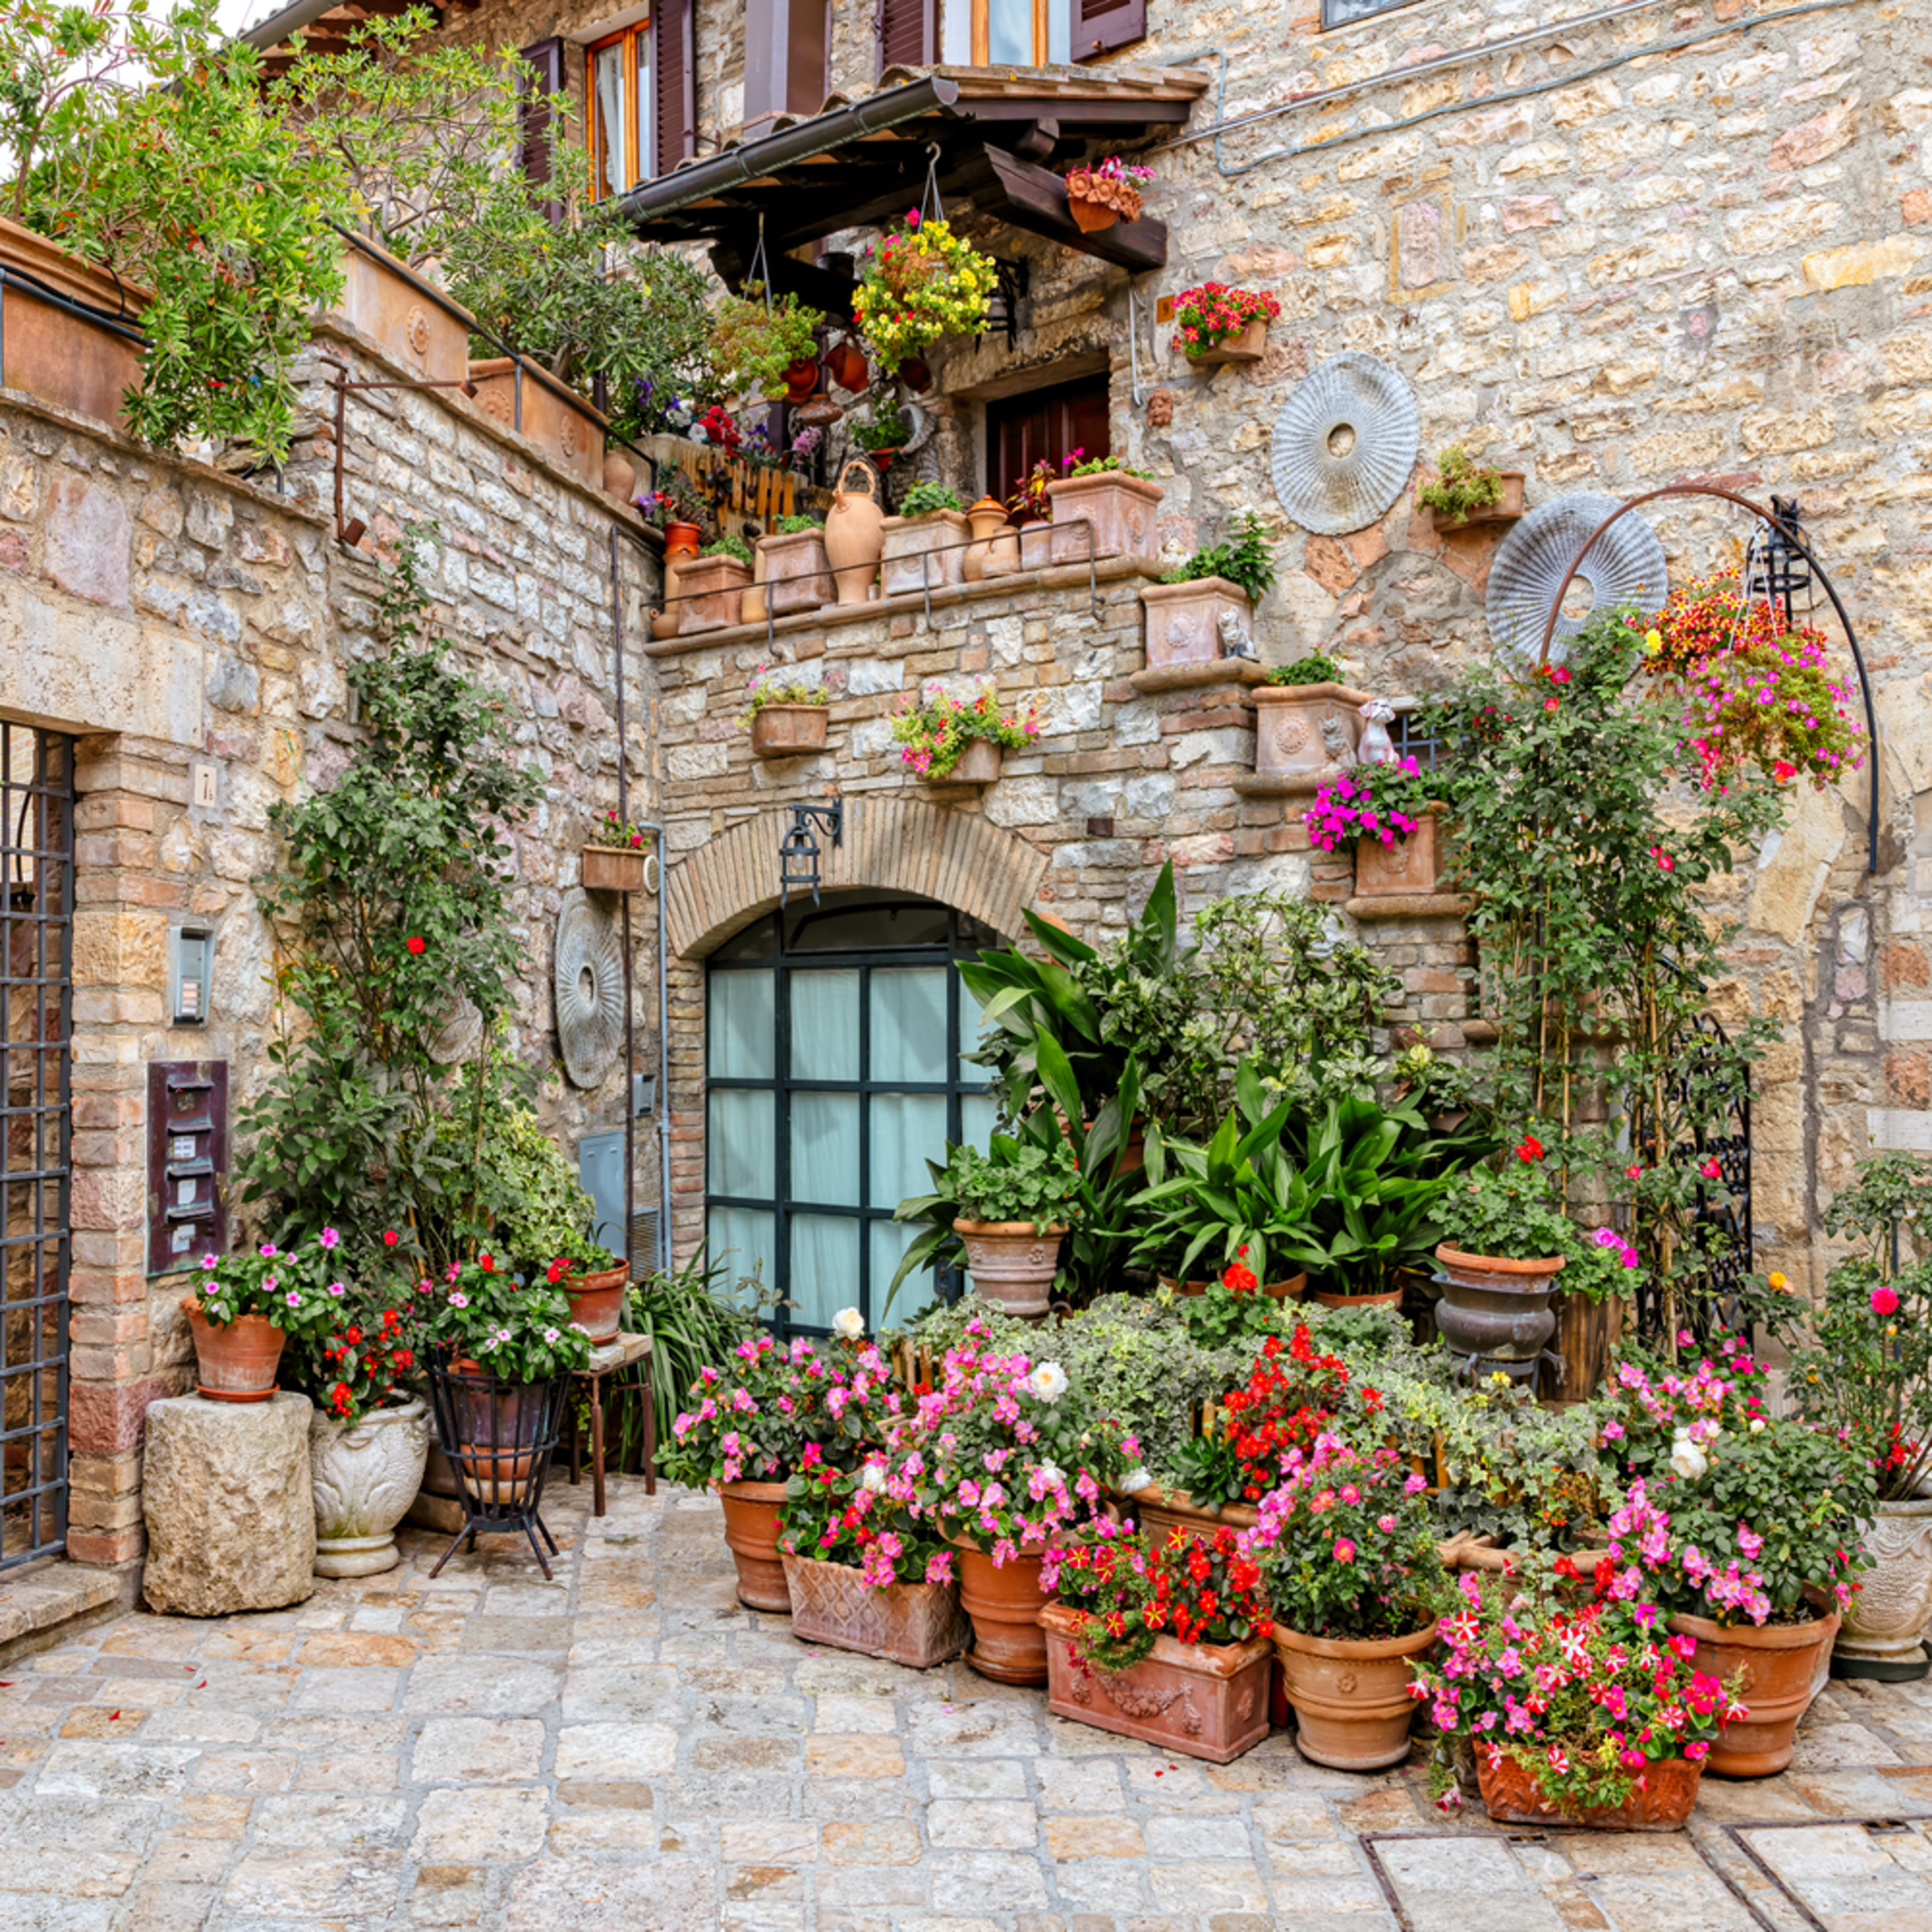 Asisi courtyard with flowers italy vcyi5d